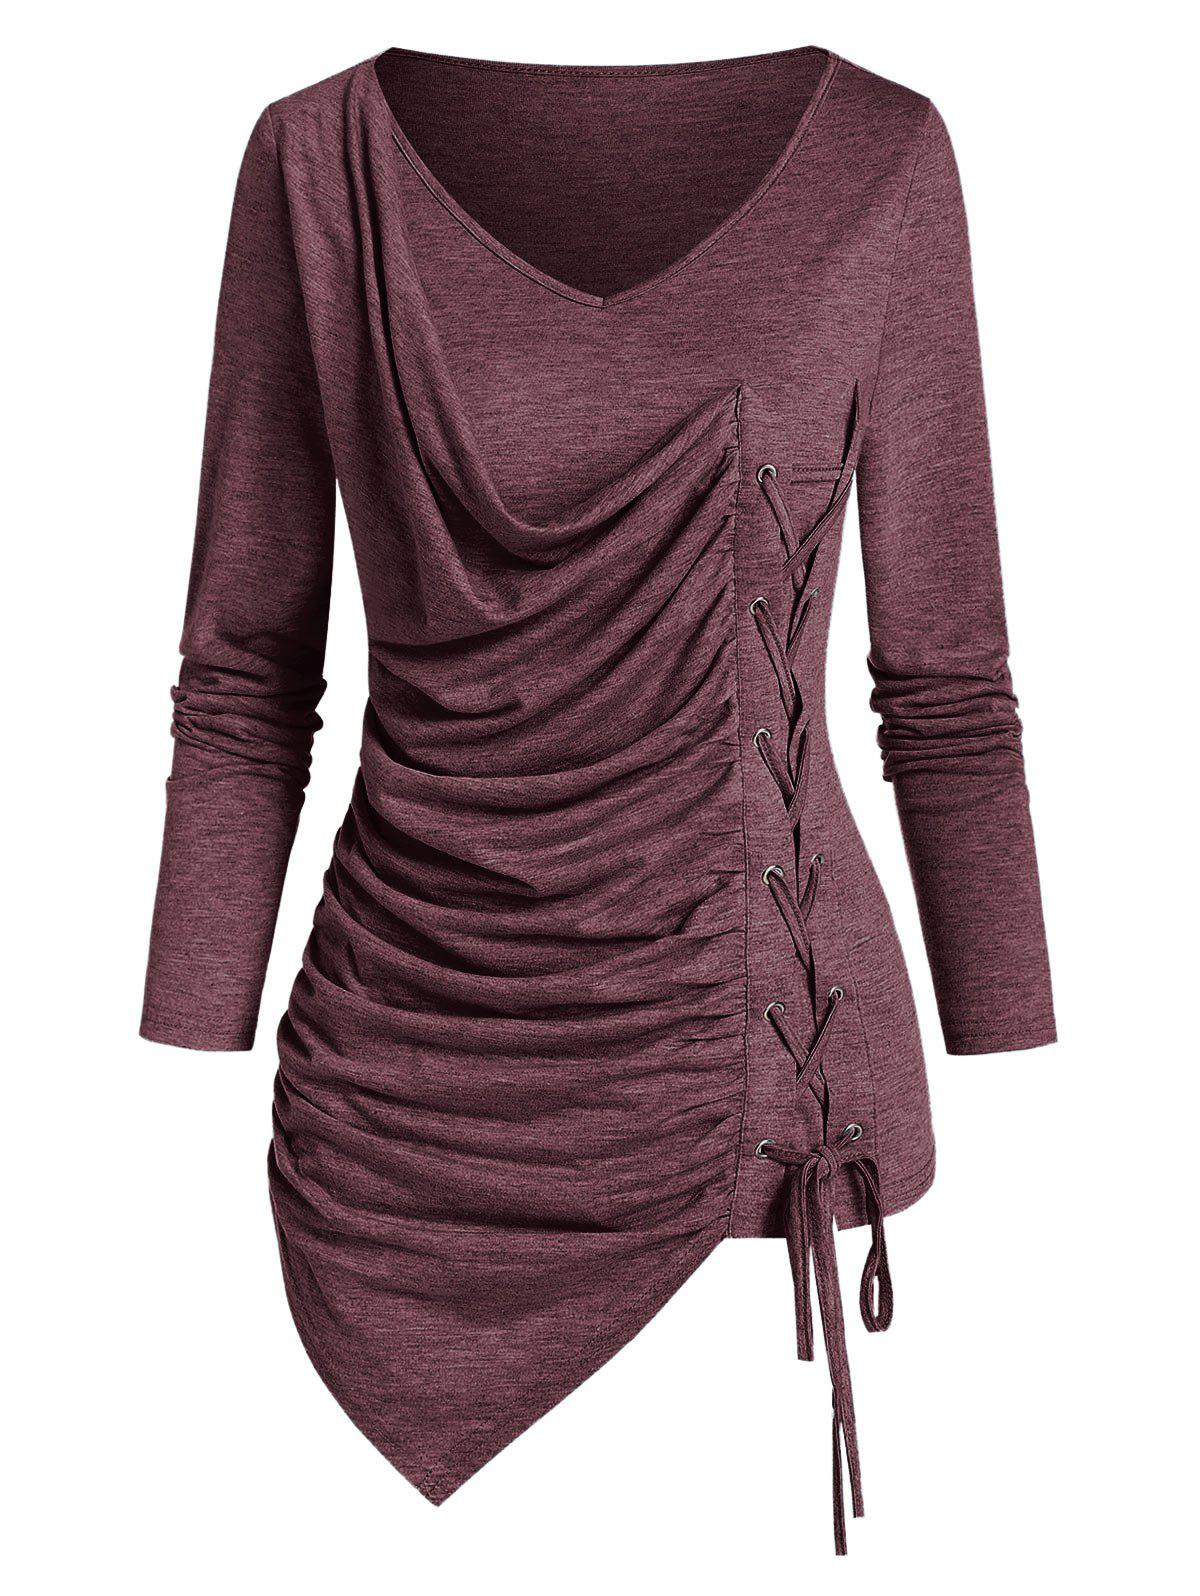 V Neck Lace Up Ruched Asymmetrical T Shirt - ROSY FINCH 2XL